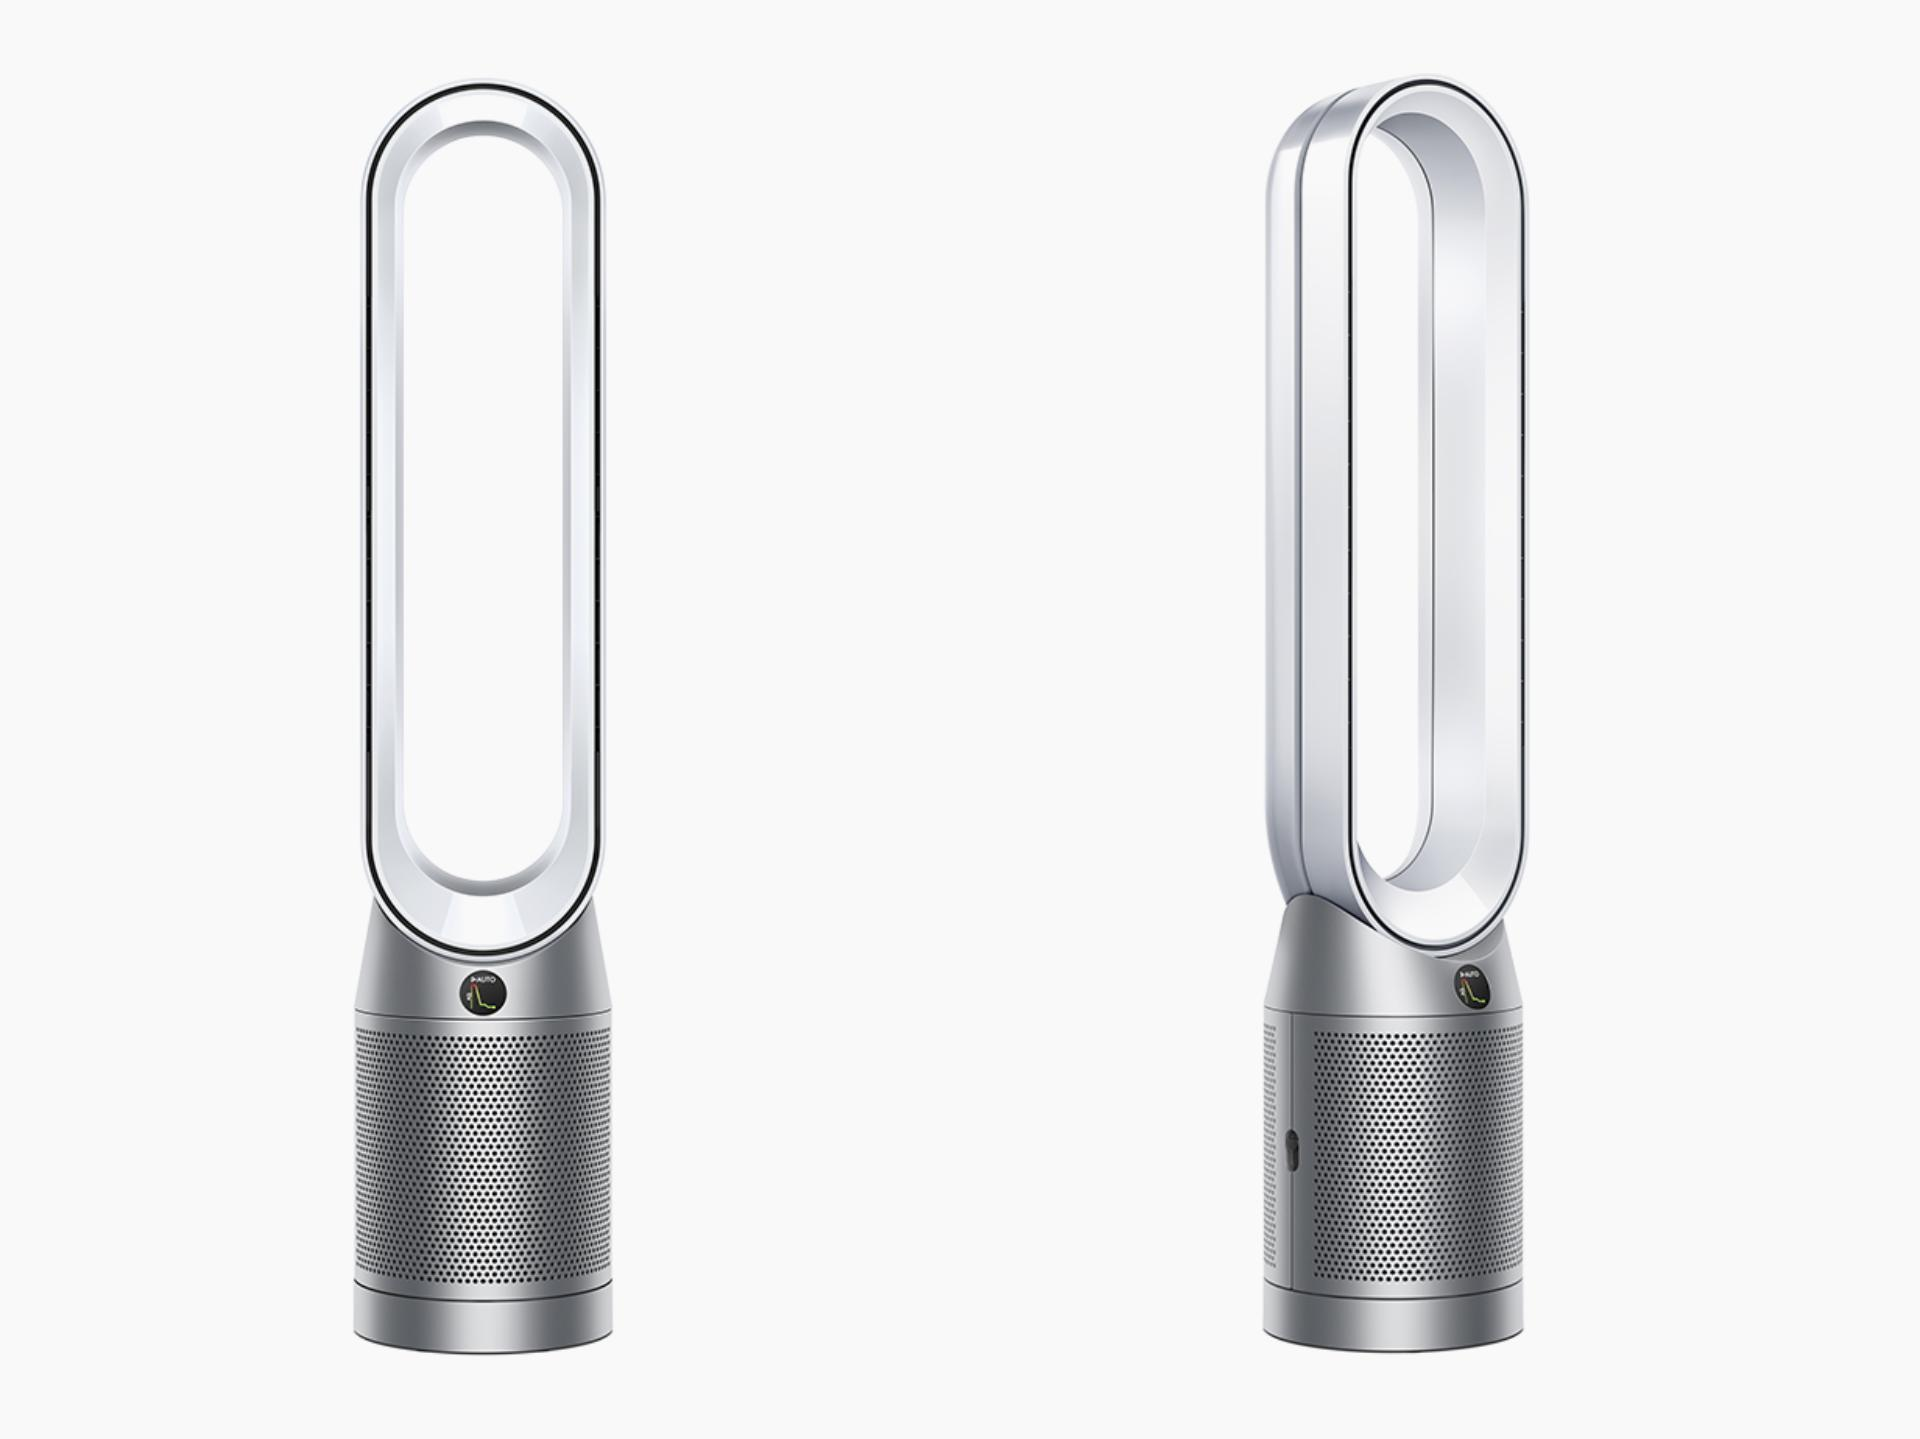 Dyson Purifier Cool front and side views